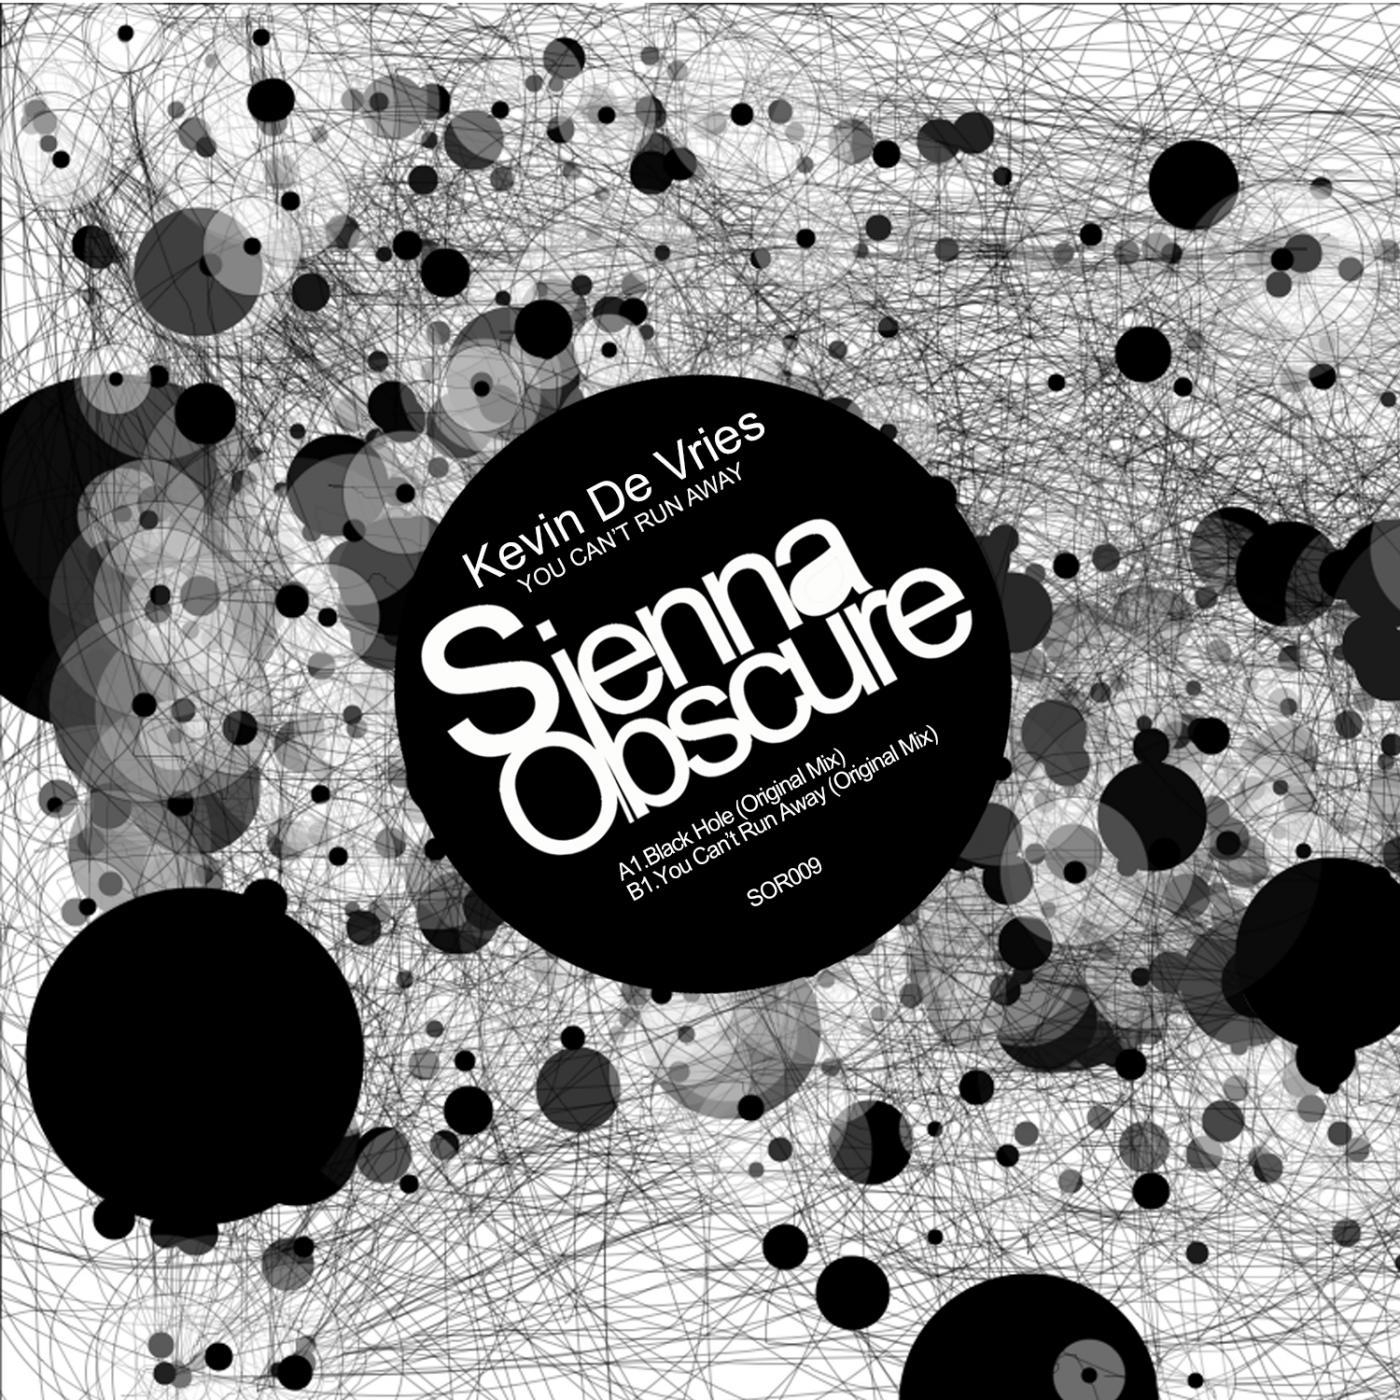 Kevin de Vries - Black Hole (Original mix)